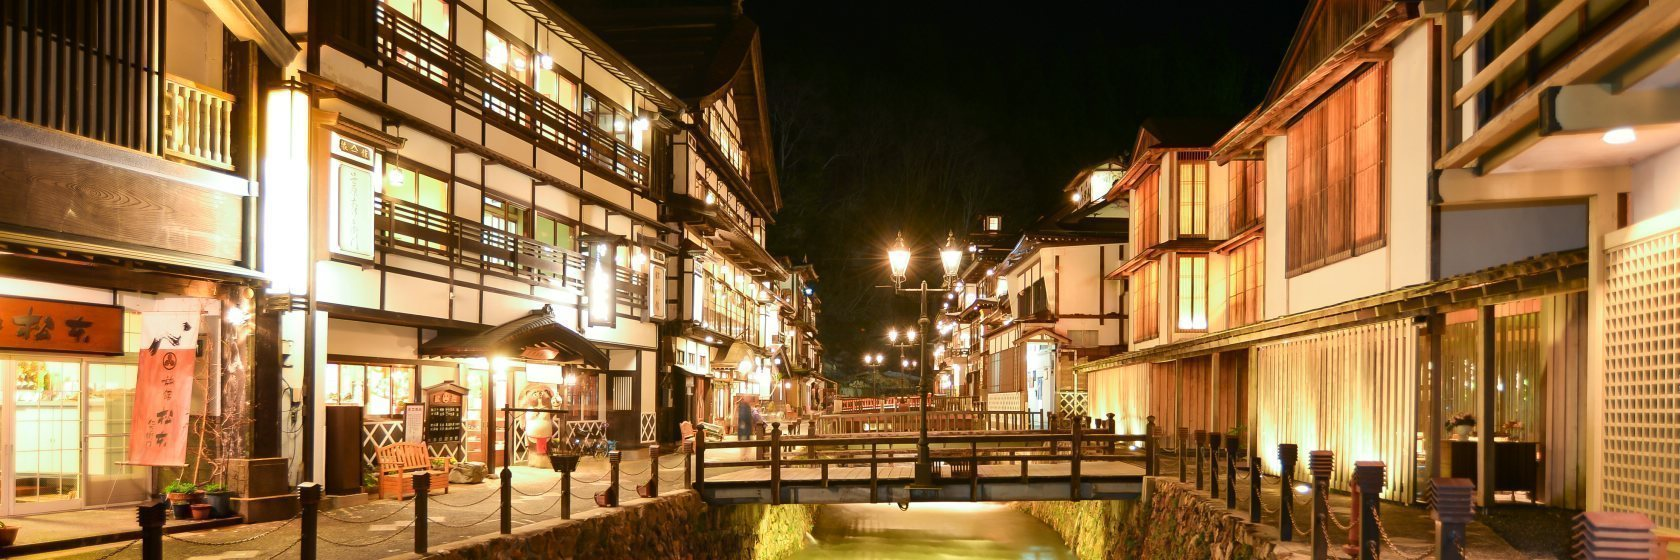 Hakone Hot Spring Trip Ginzan Onsen Travel Guide